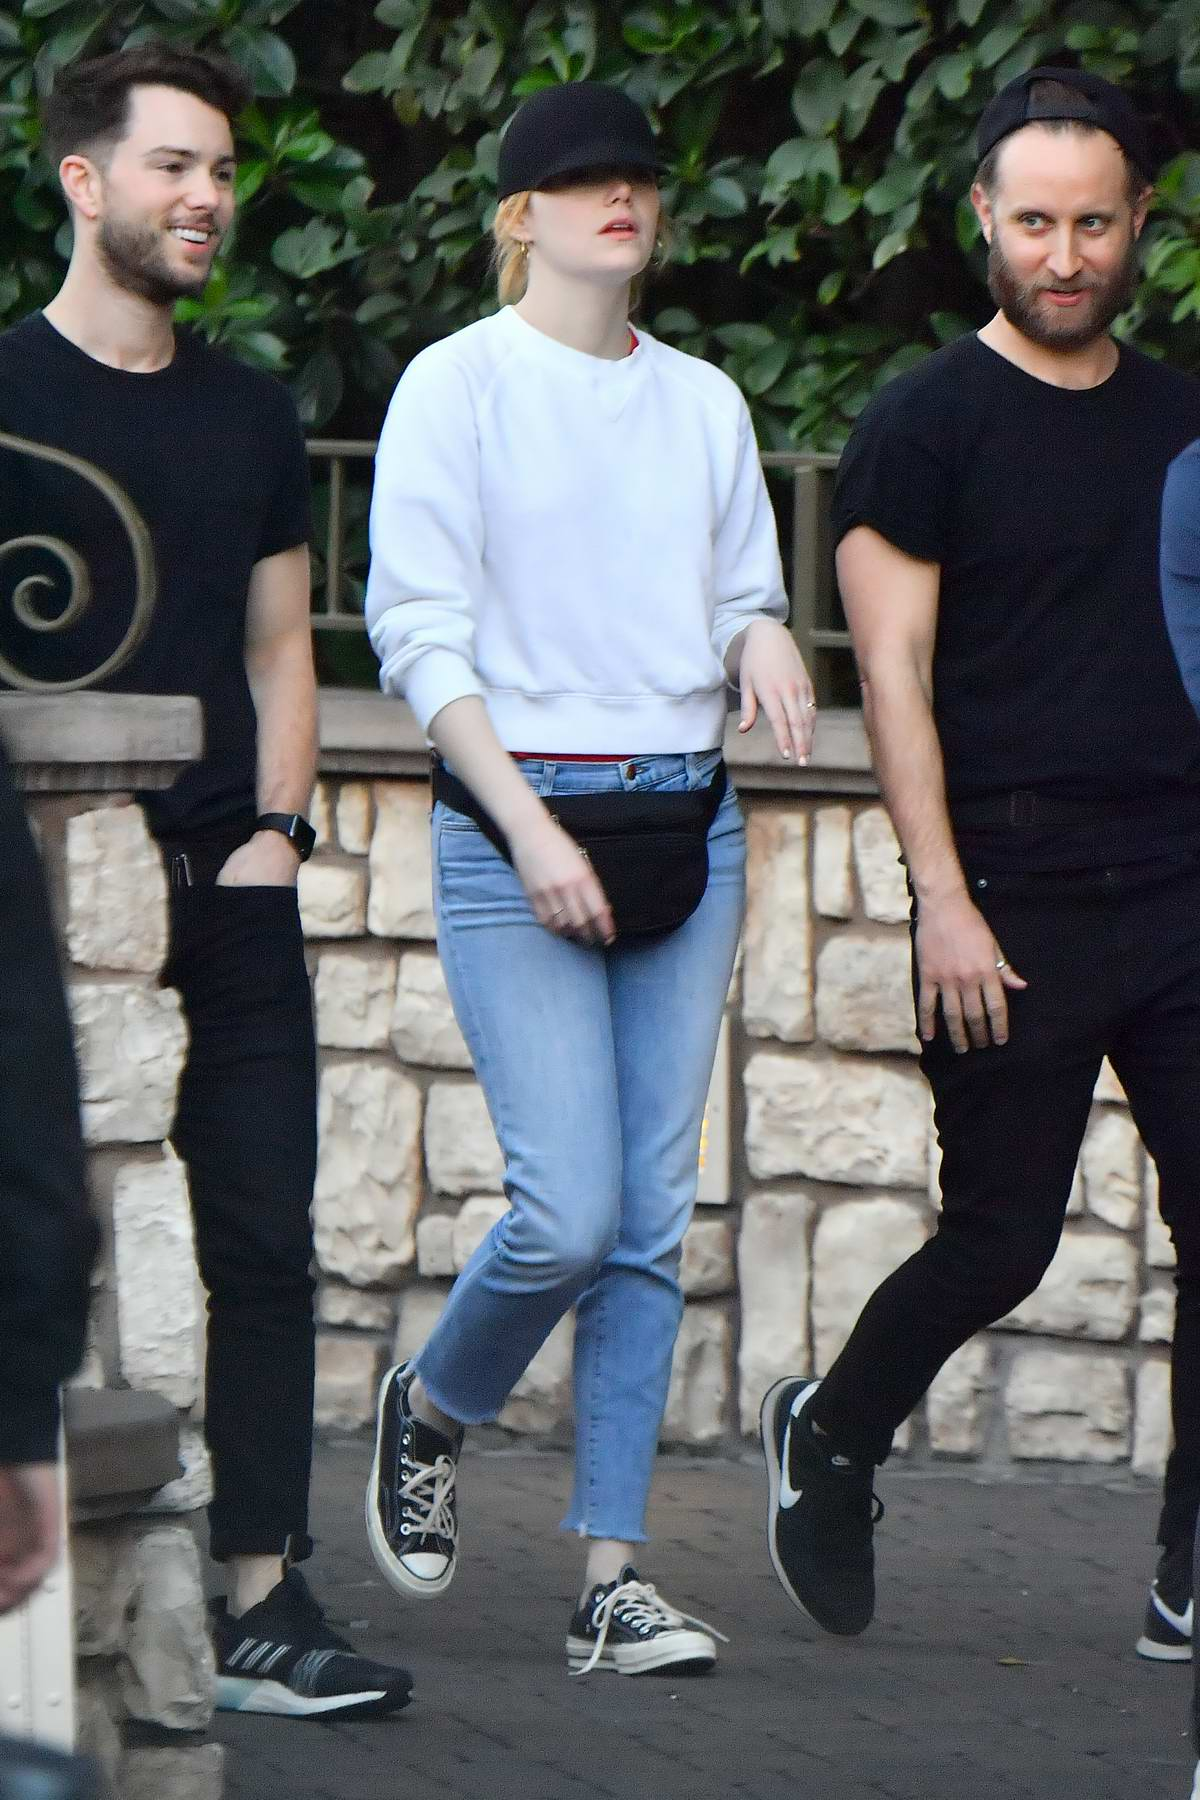 Emma Stone enjoys a day out with friends at Disneyland in Anaheim, California